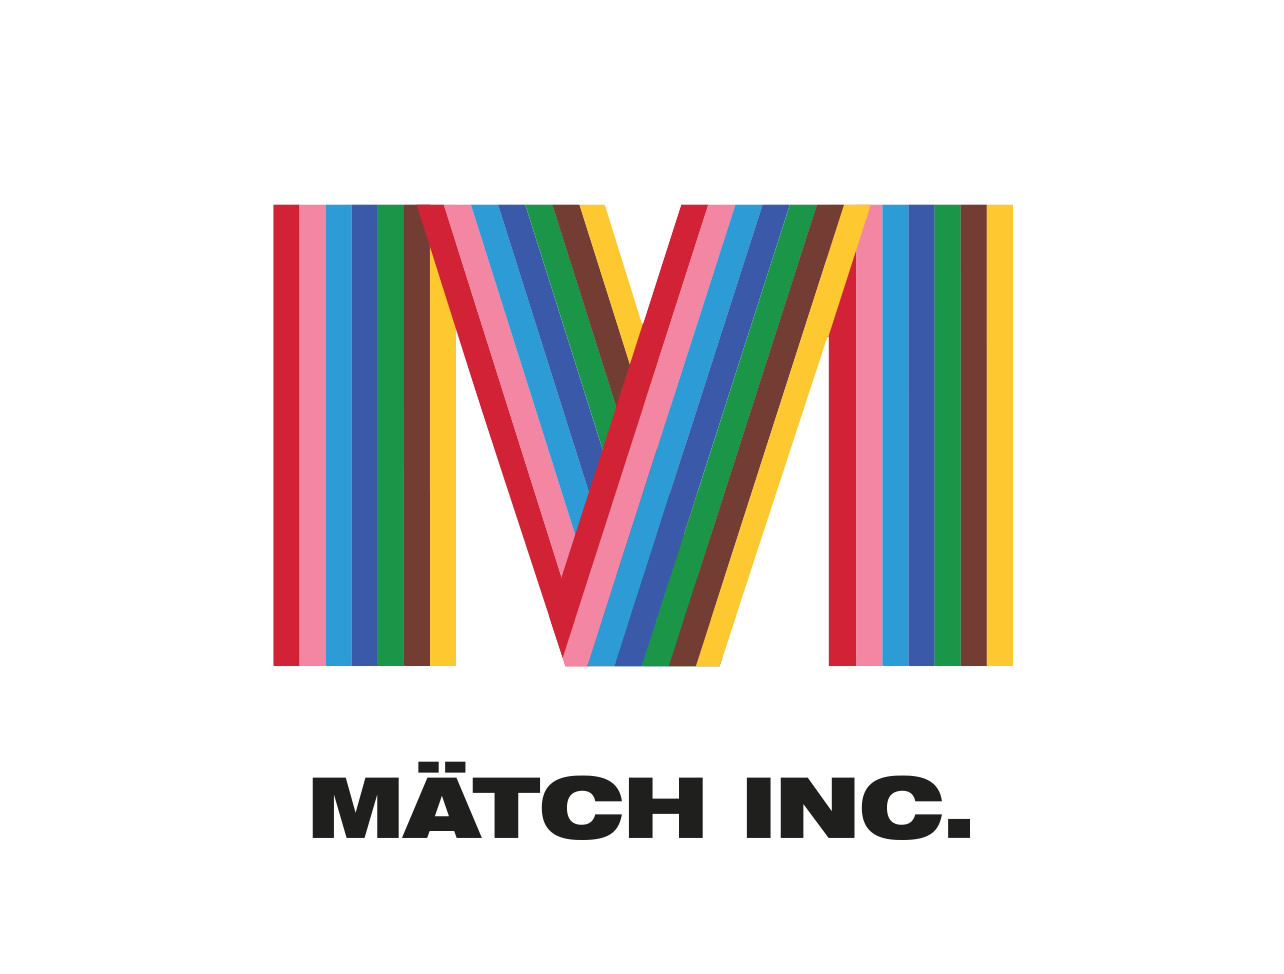 Mätch Inc.